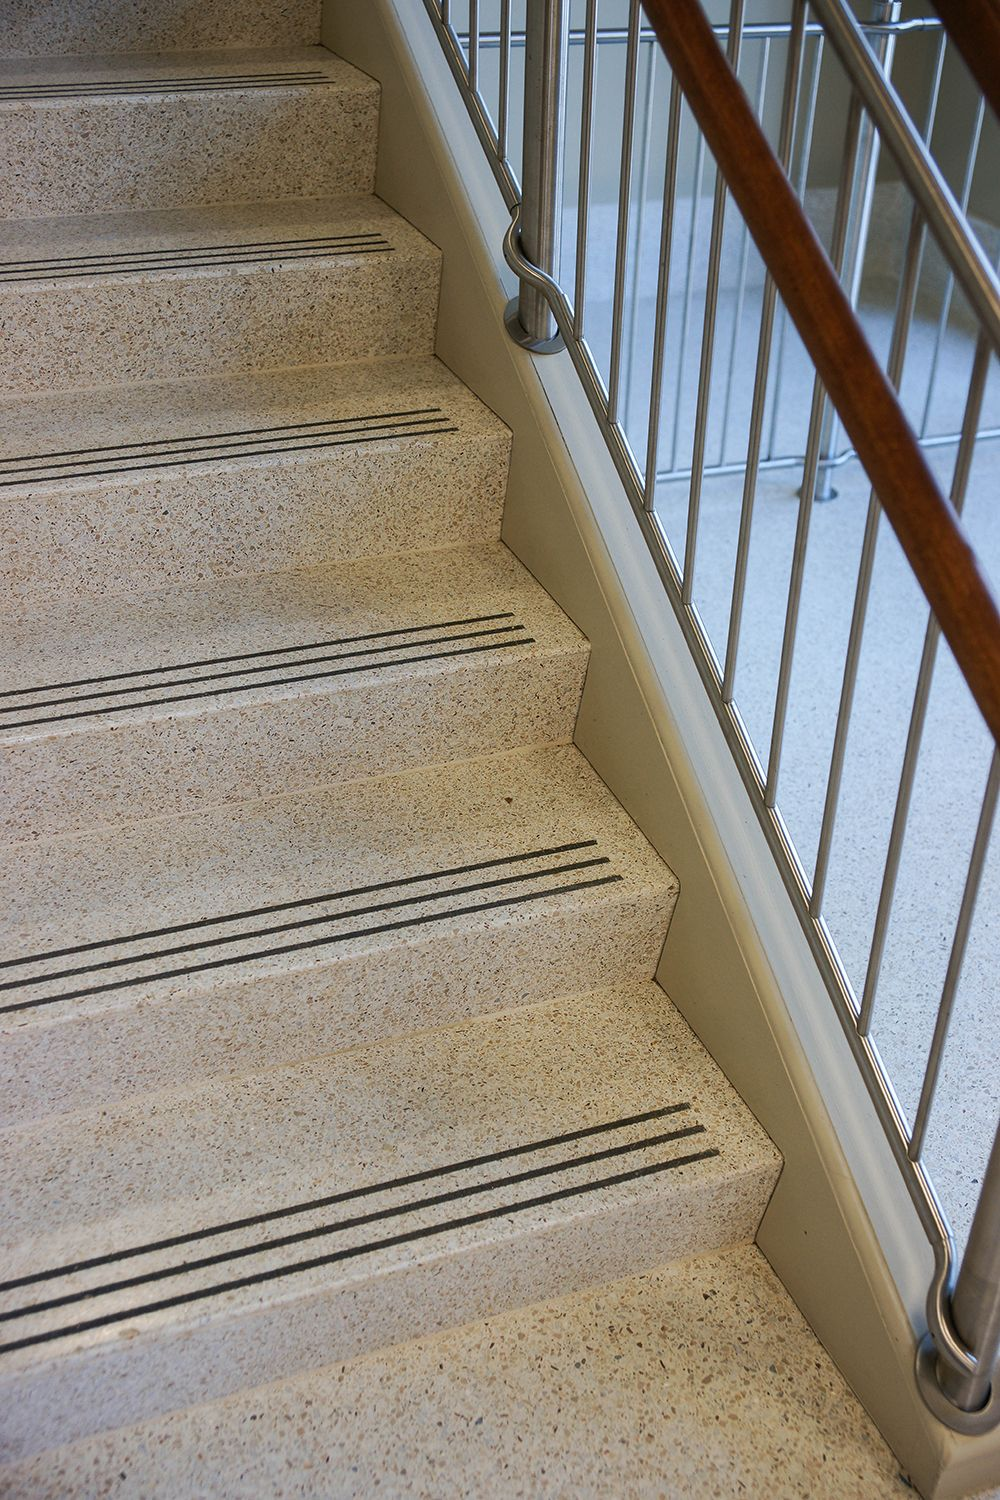 Best Image Result For Poured Concrete Stairs With Abrasive 640 x 480